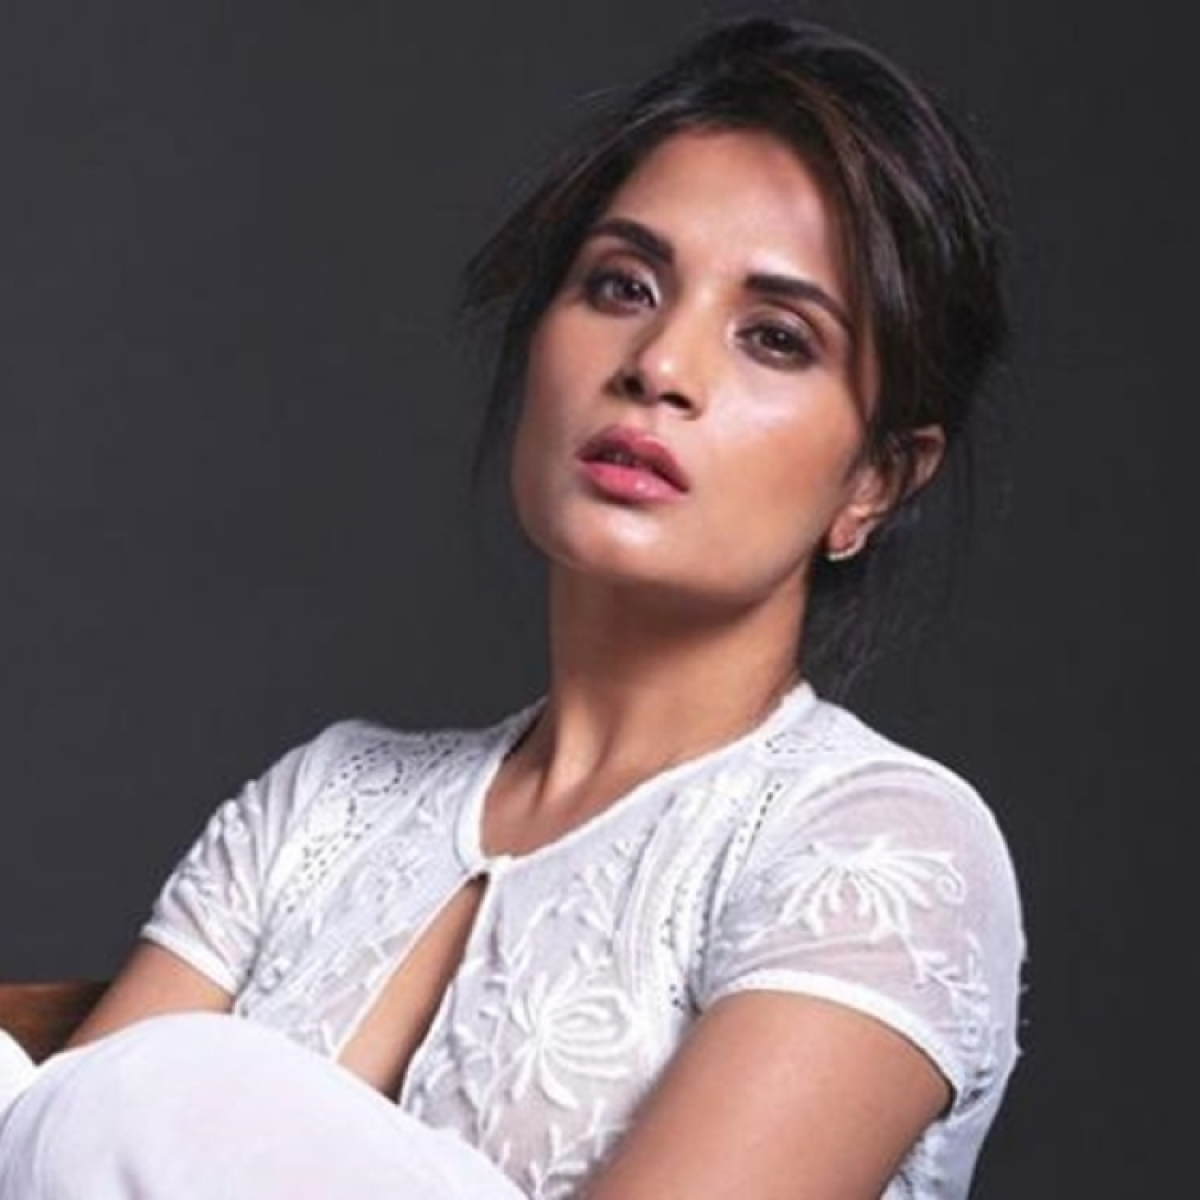 Richa Chadha misses out on NCW mail in Payal Ghosh defamation case; apologises to Rekha Sharma